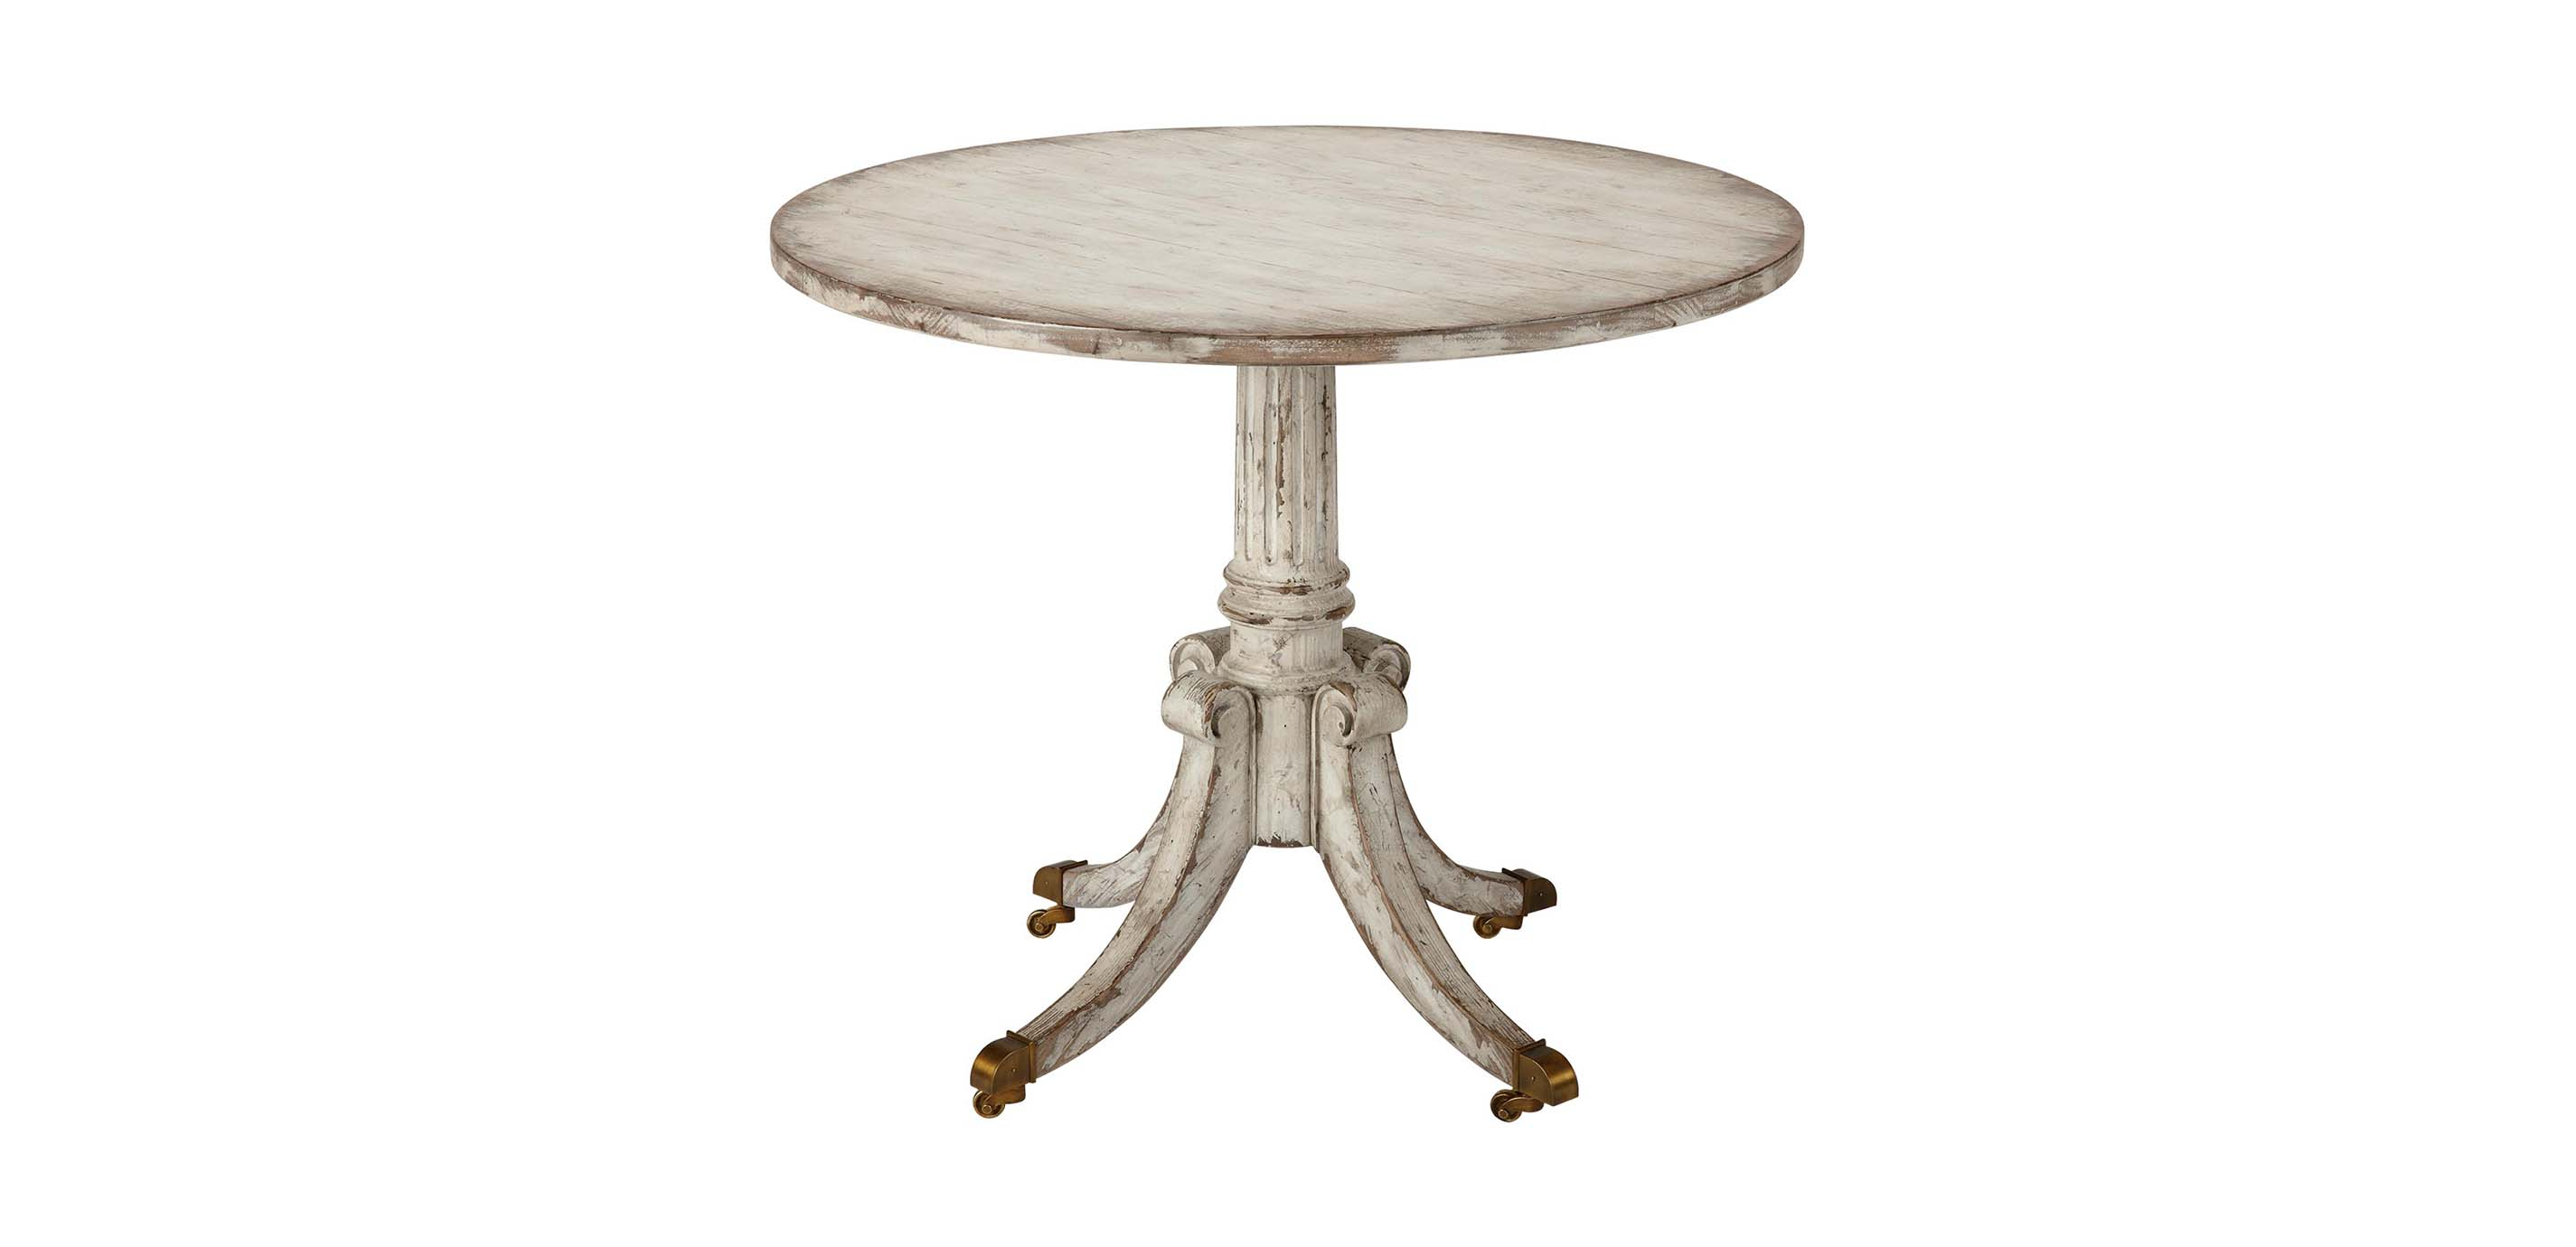 Images Vienna Round Pedestal Table, Brie , , Large_gray